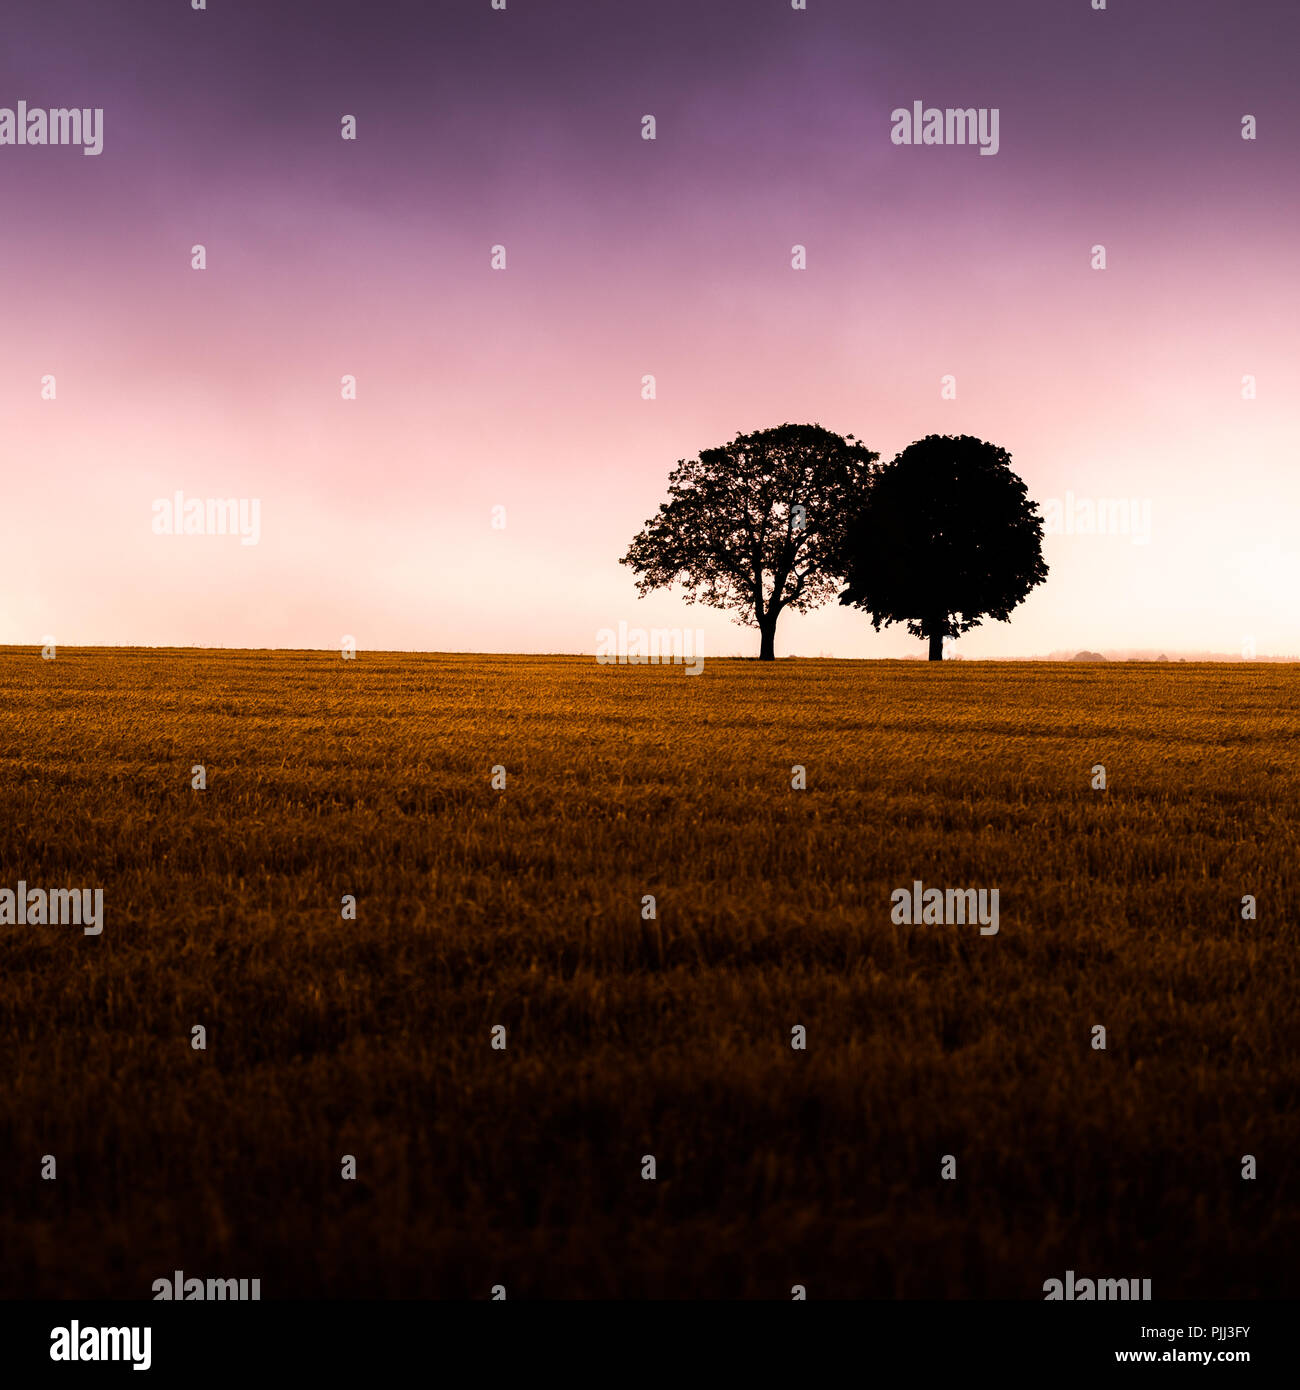 two trees on the horizon of a corn field - Stock Image